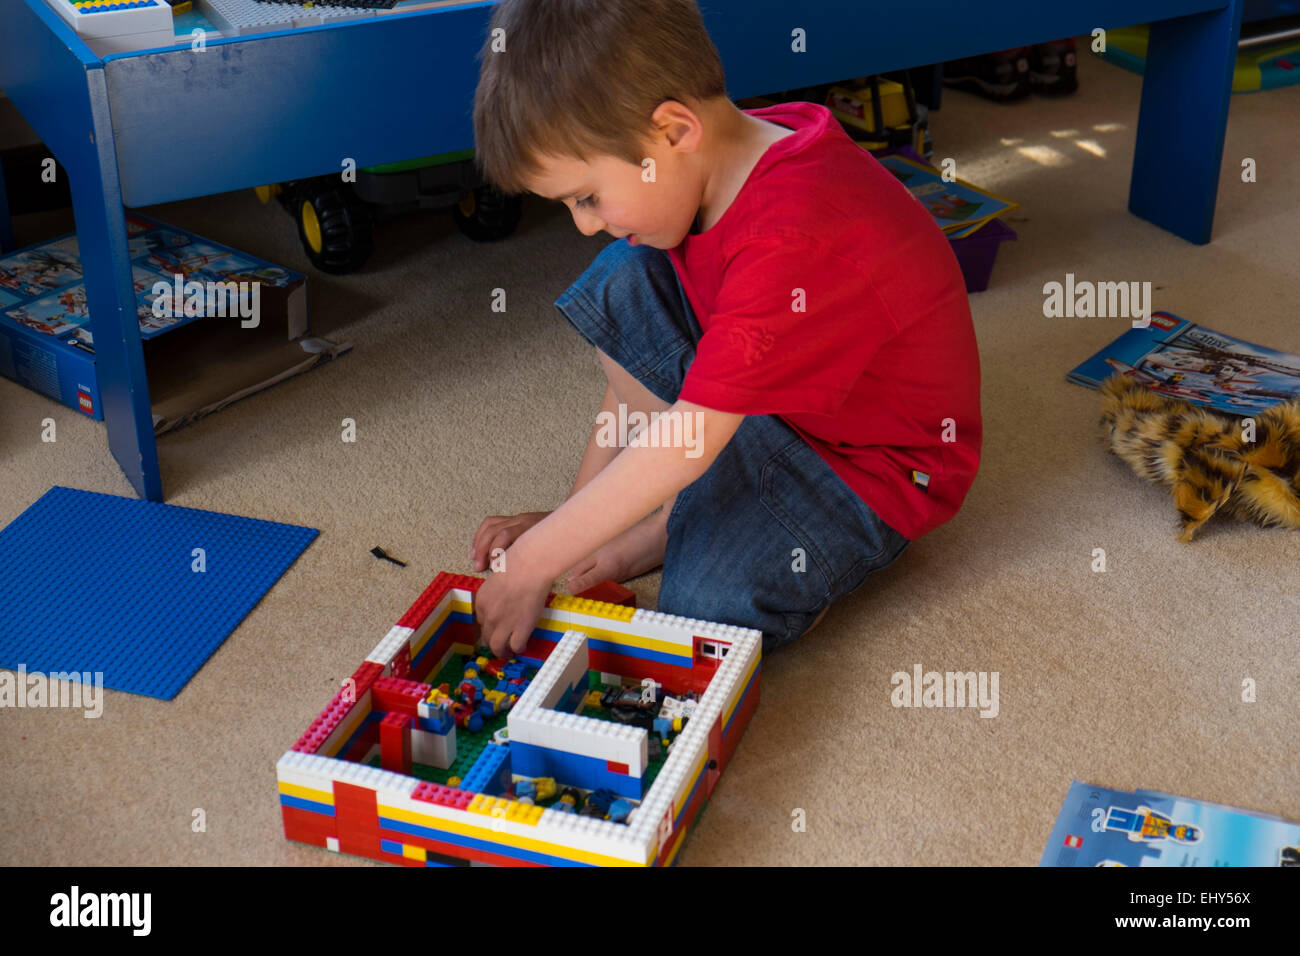 Boy aged four years playing with Lego building blocks in bedroom Stock Photo